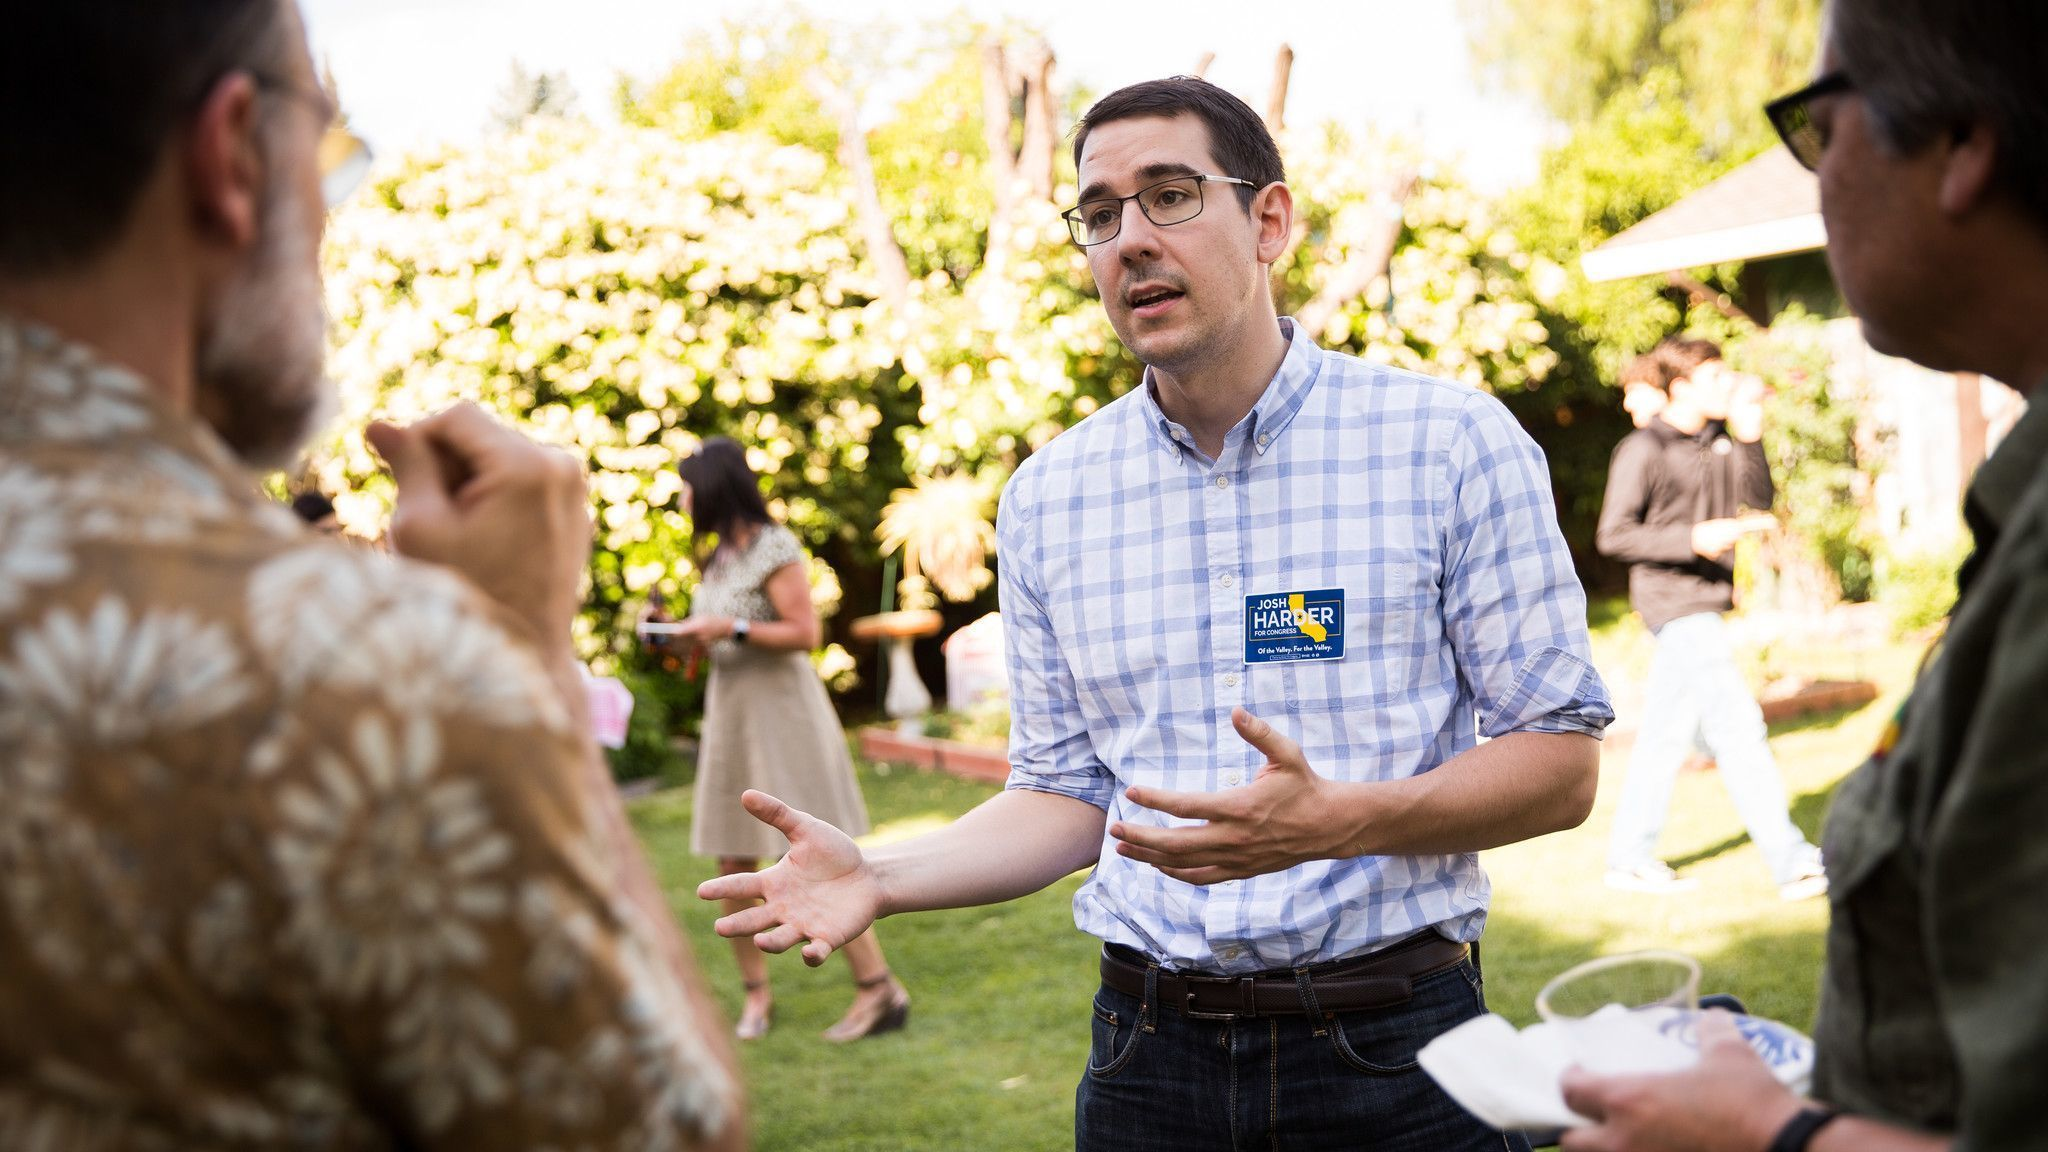 MODESTO, CA MAY 8, 2018 — Democratic congressional candidate Josh Harder speaks with voters during